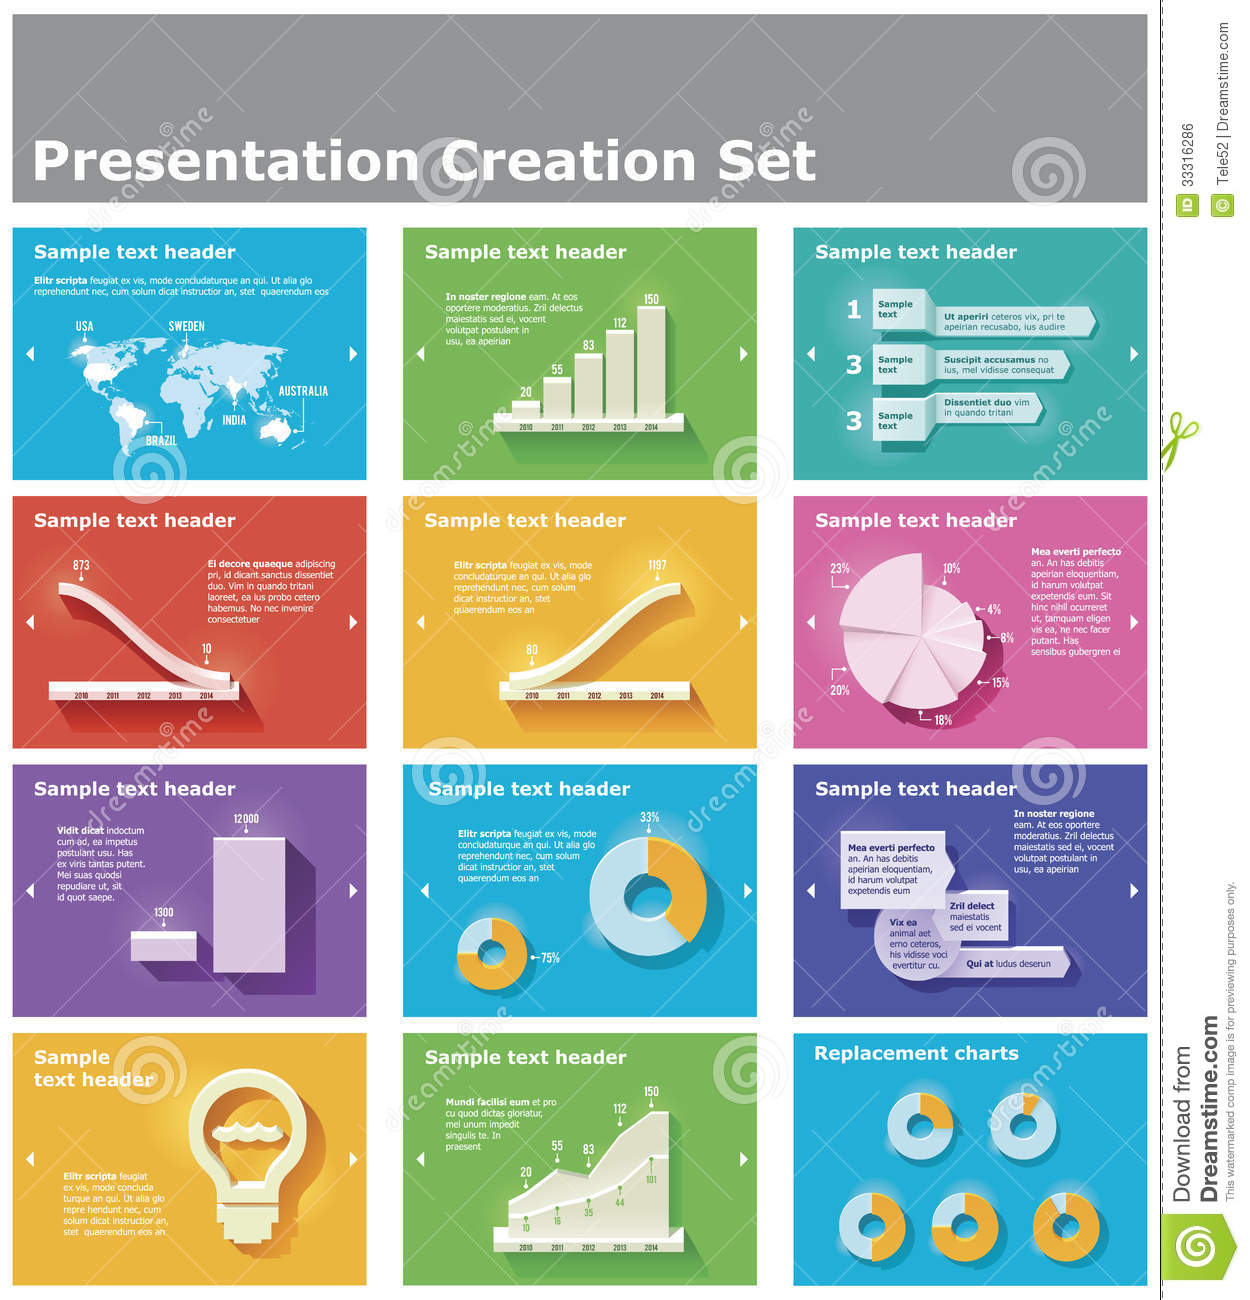 Vector Presentation Elements Royalty Free Stock Image - Image ...